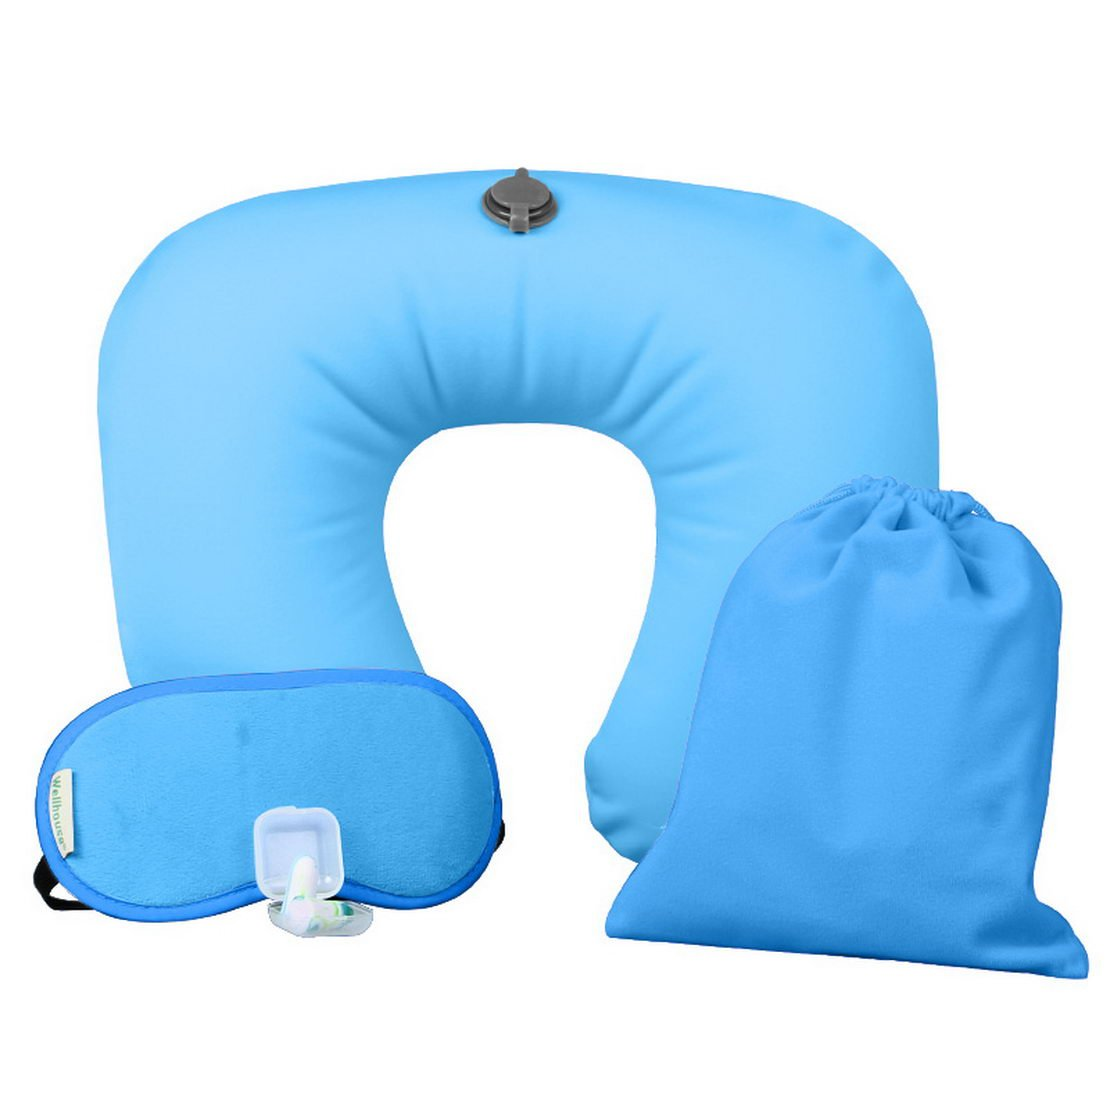 donfohy U-shaped inflatable travel pillow travel pillow airplane outdoor tourism neck neck pillow ice silk-type summer and winter by donfohy